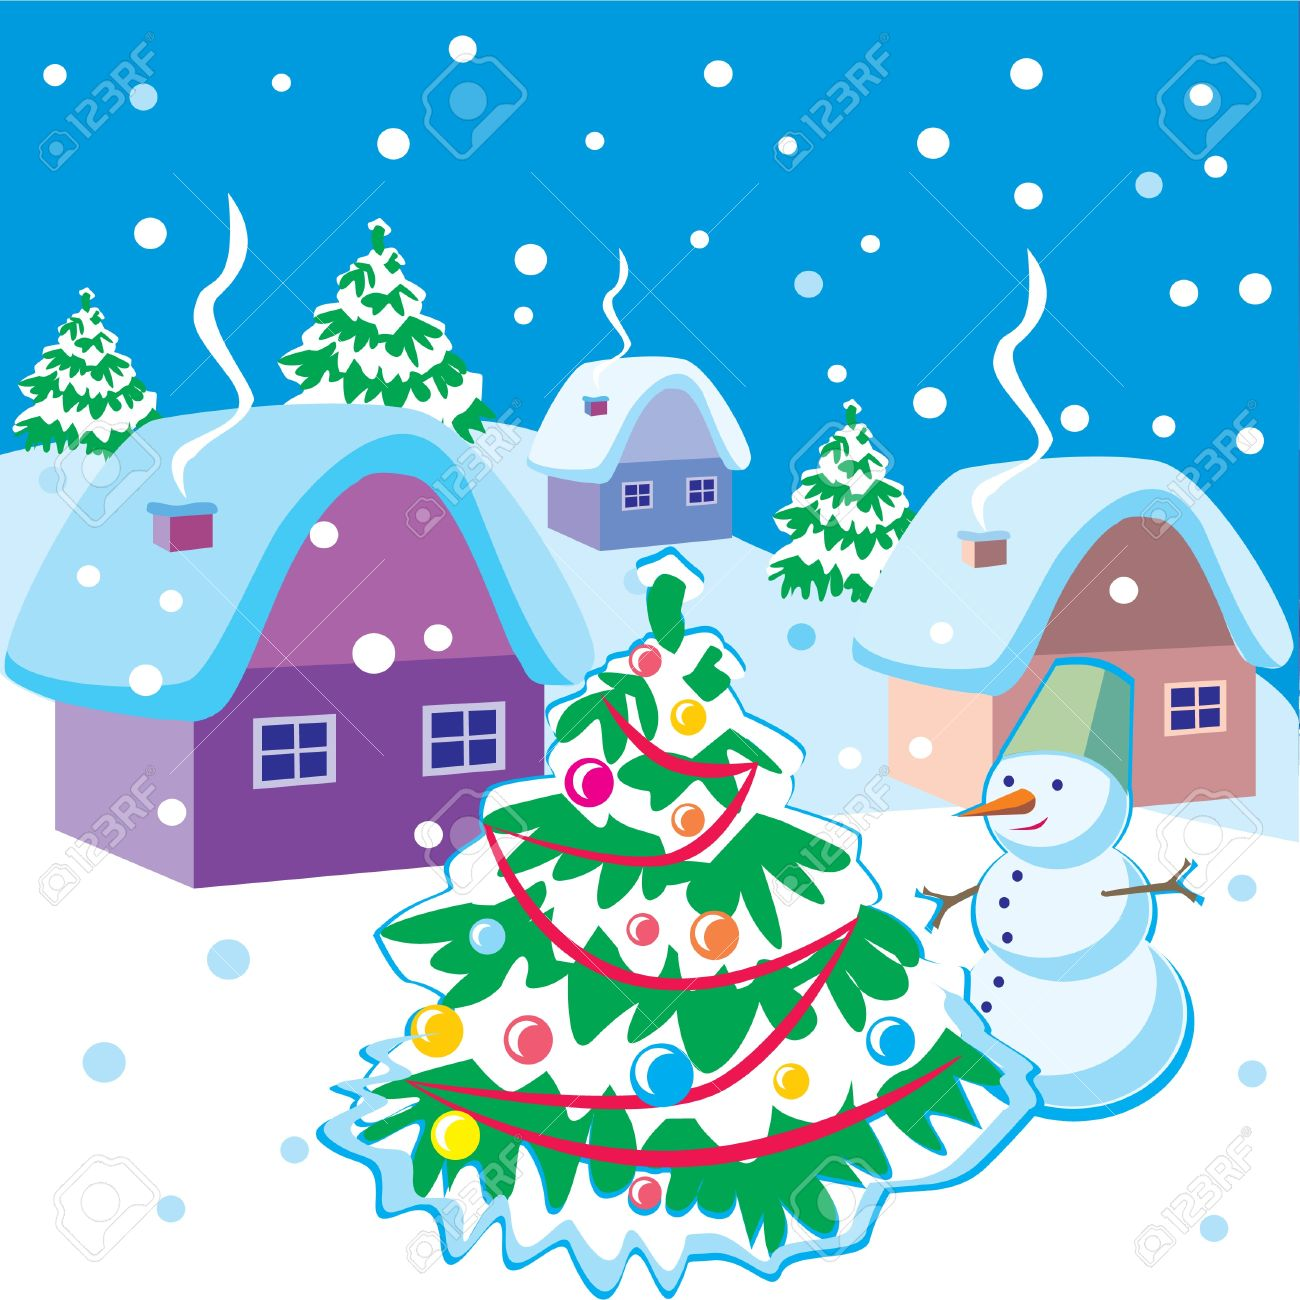 Landscape with snowman and Christmas tree Stock Vector - 10032768